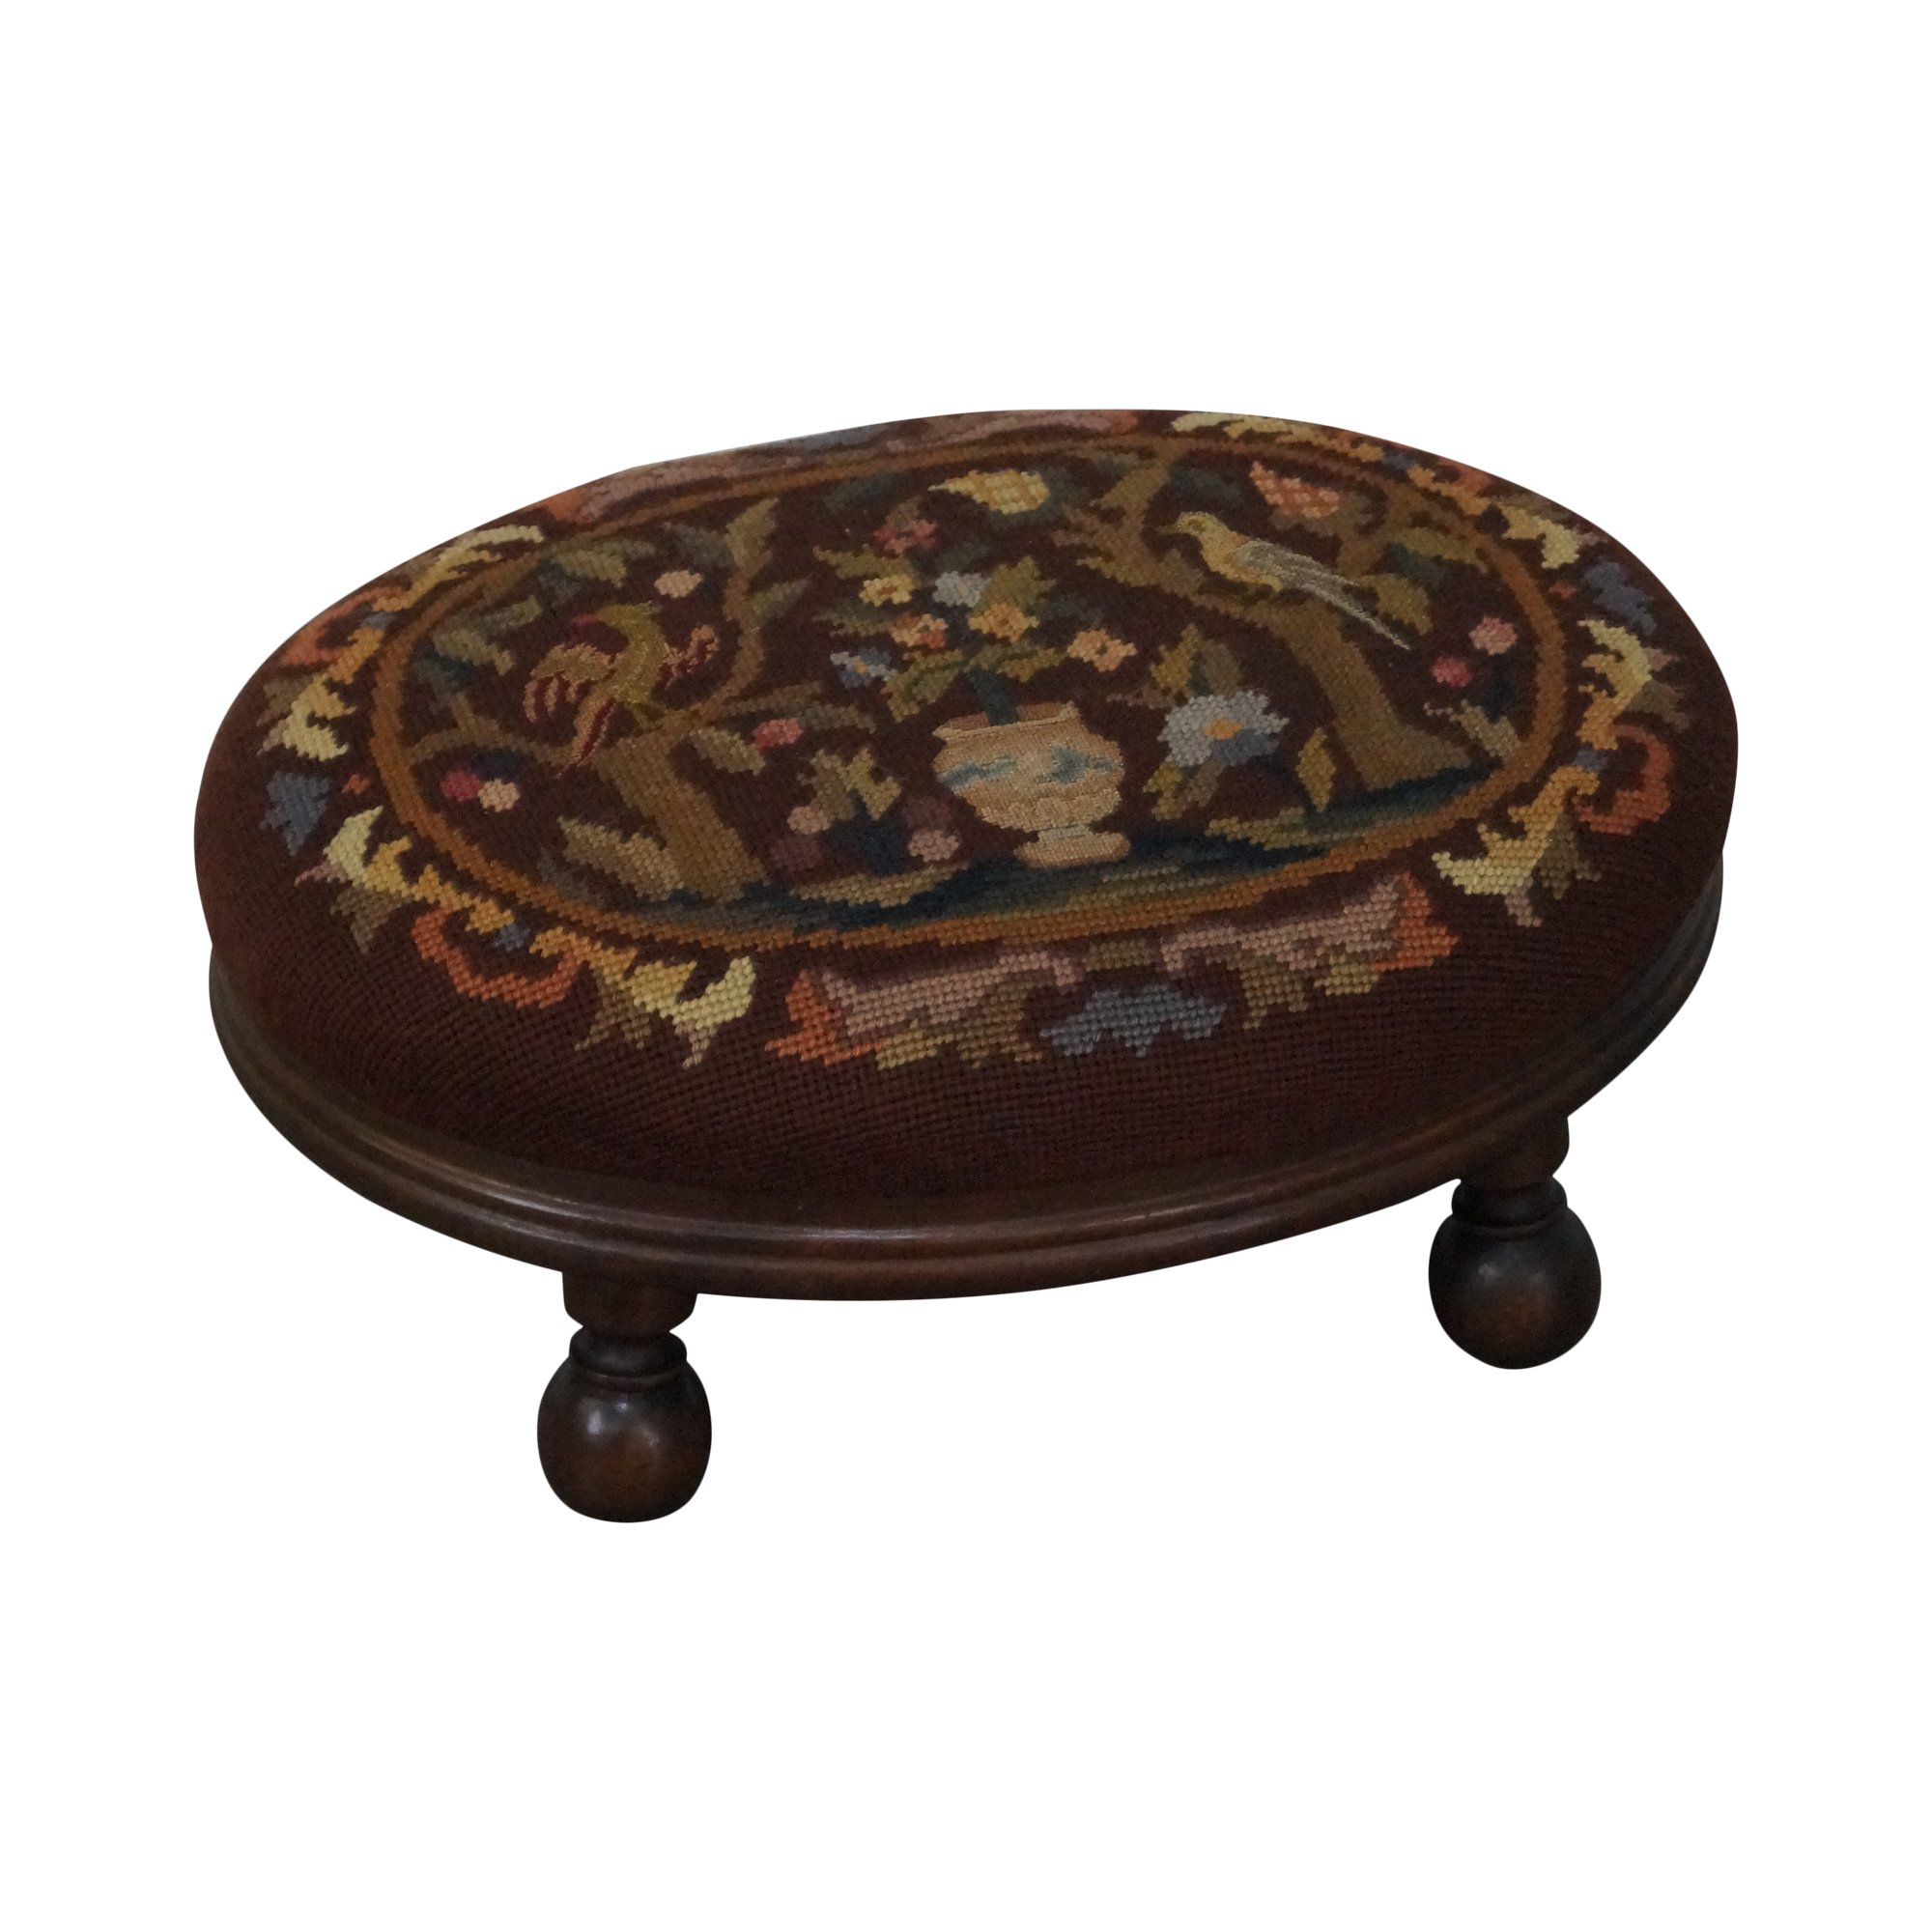 Antique Needlepoint Renaissance Revival Foot Stool   Image 1 Of 10